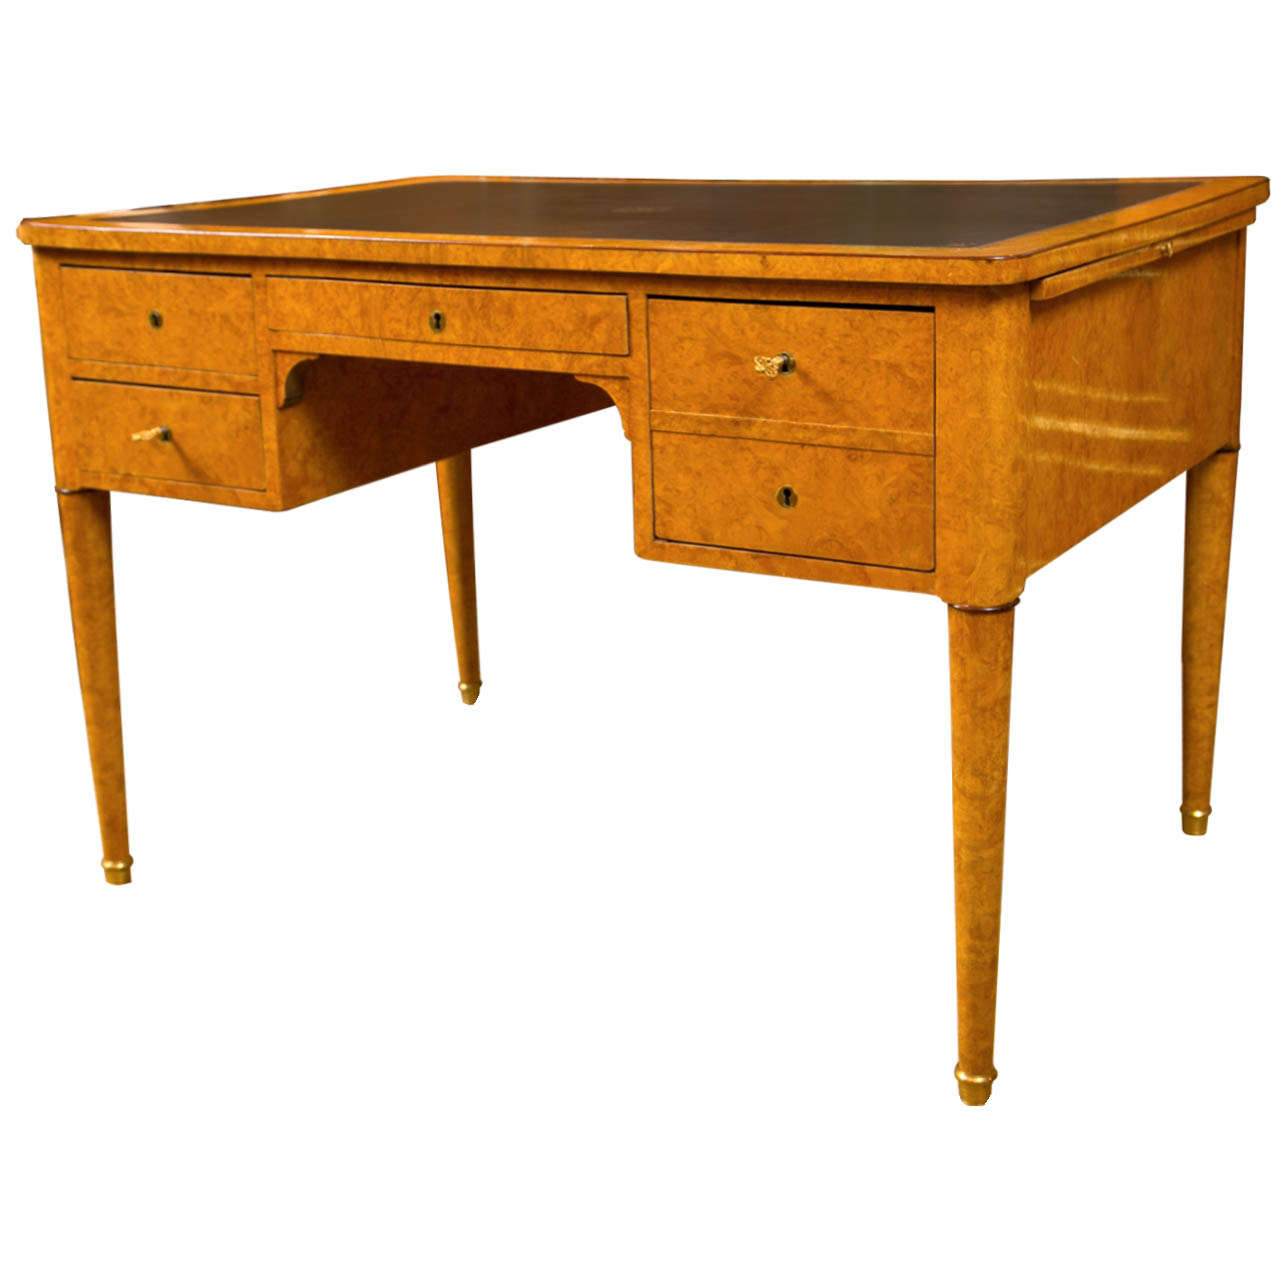 A French Charles X desk or bureau plat with barr ash and amaranth with a leather top. Great quality and secure inner compartments.